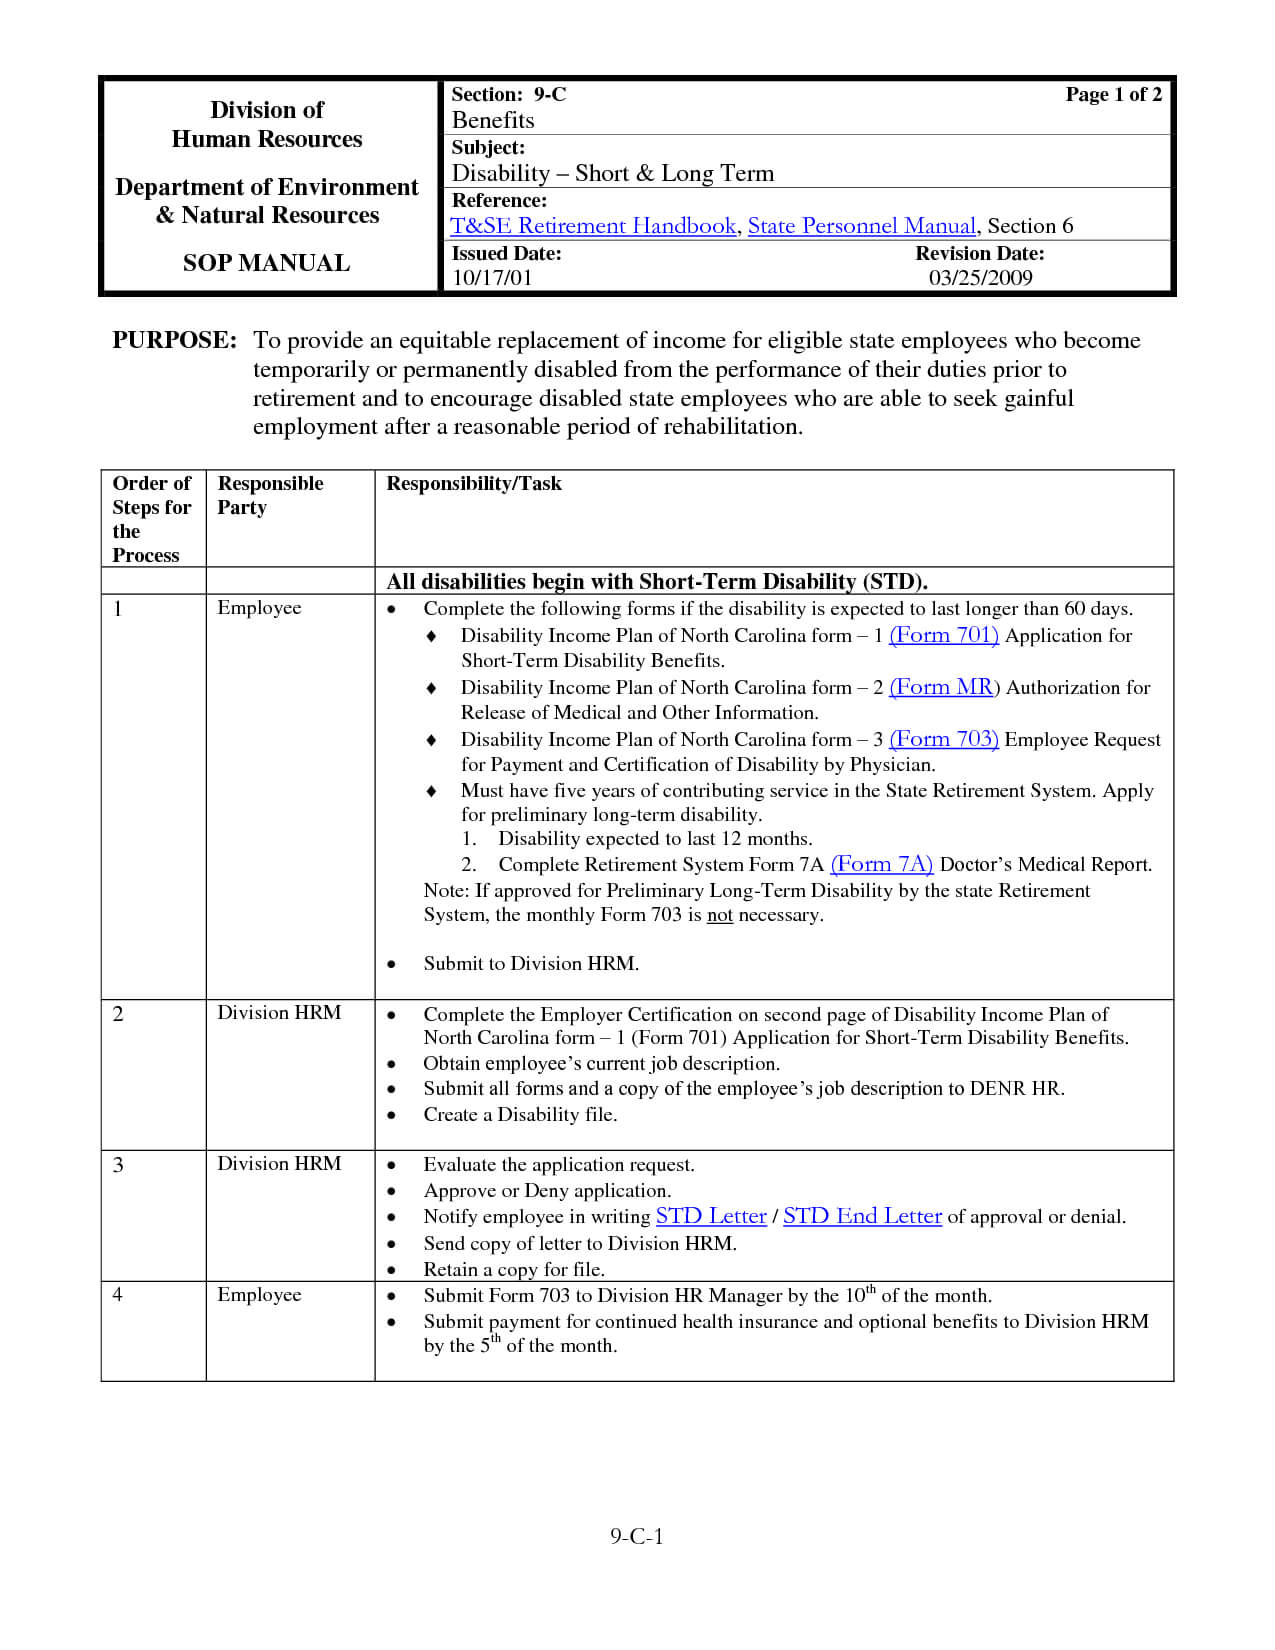 030 Template Ideas Standard Operating Procedure Free Manual Throughout Procedure Manual Template Word Free